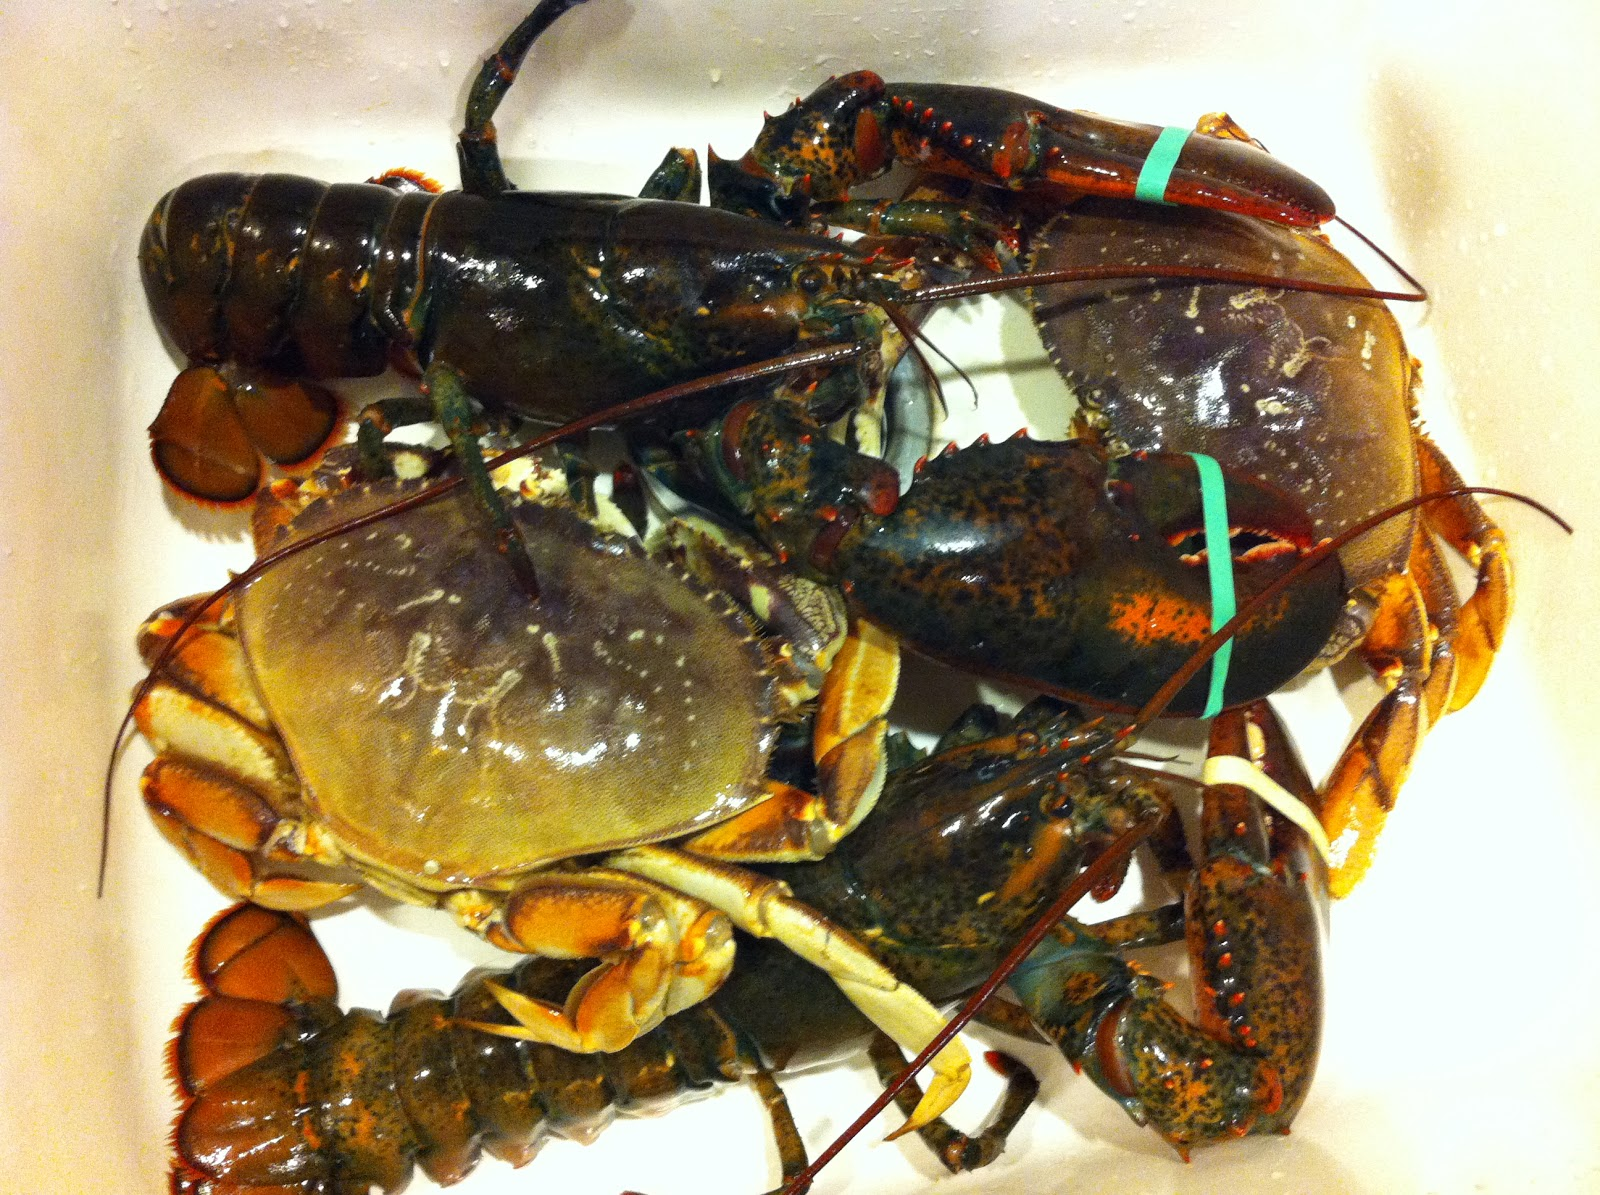 Food Sparks A Christmas Feast Of Crabs And Lobsters